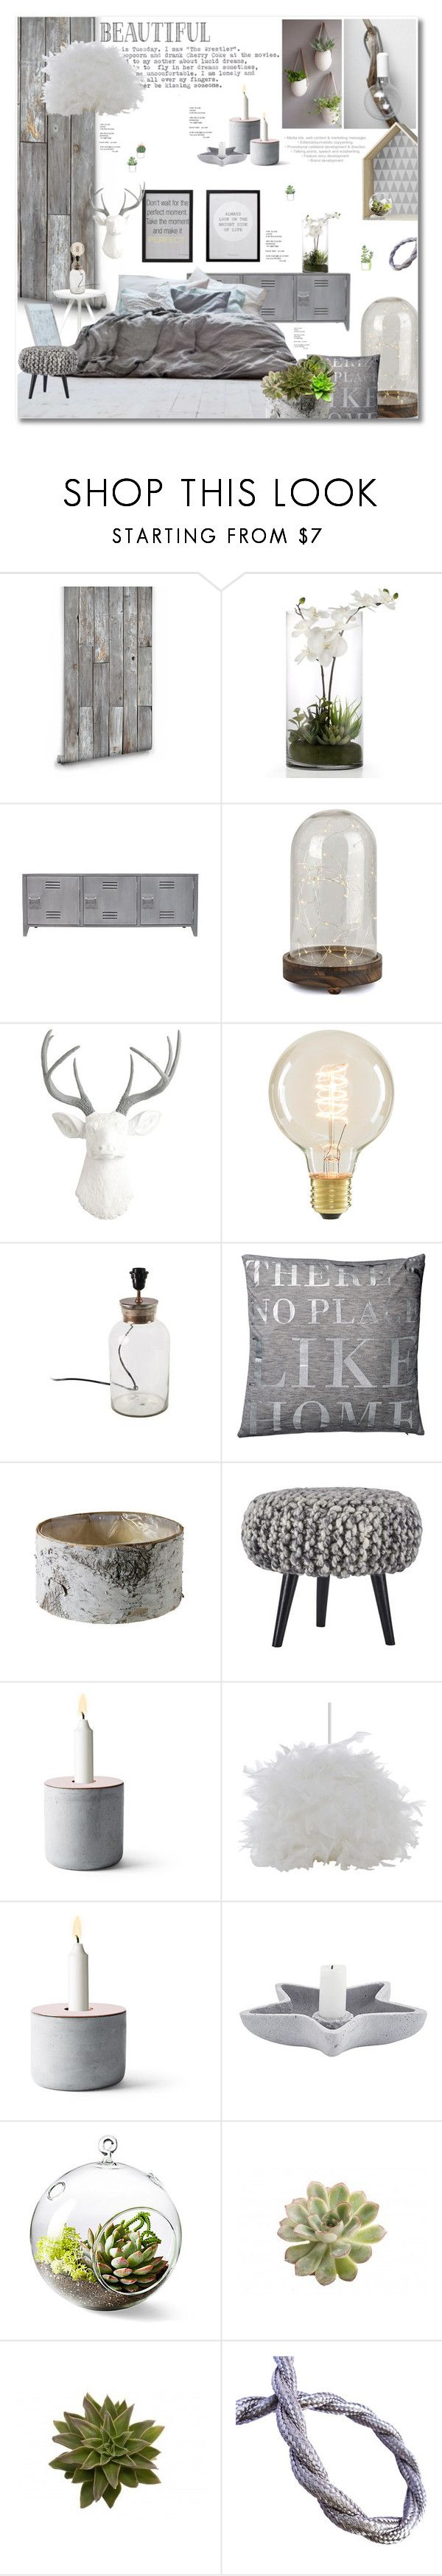 """""""Bedroom Dreams"""" by dittestegemejer on Polyvore featuring interior, interiors, interior design, home, home decor, interior decorating, Milton & King, Bloomingville, House Doctor and Menu"""